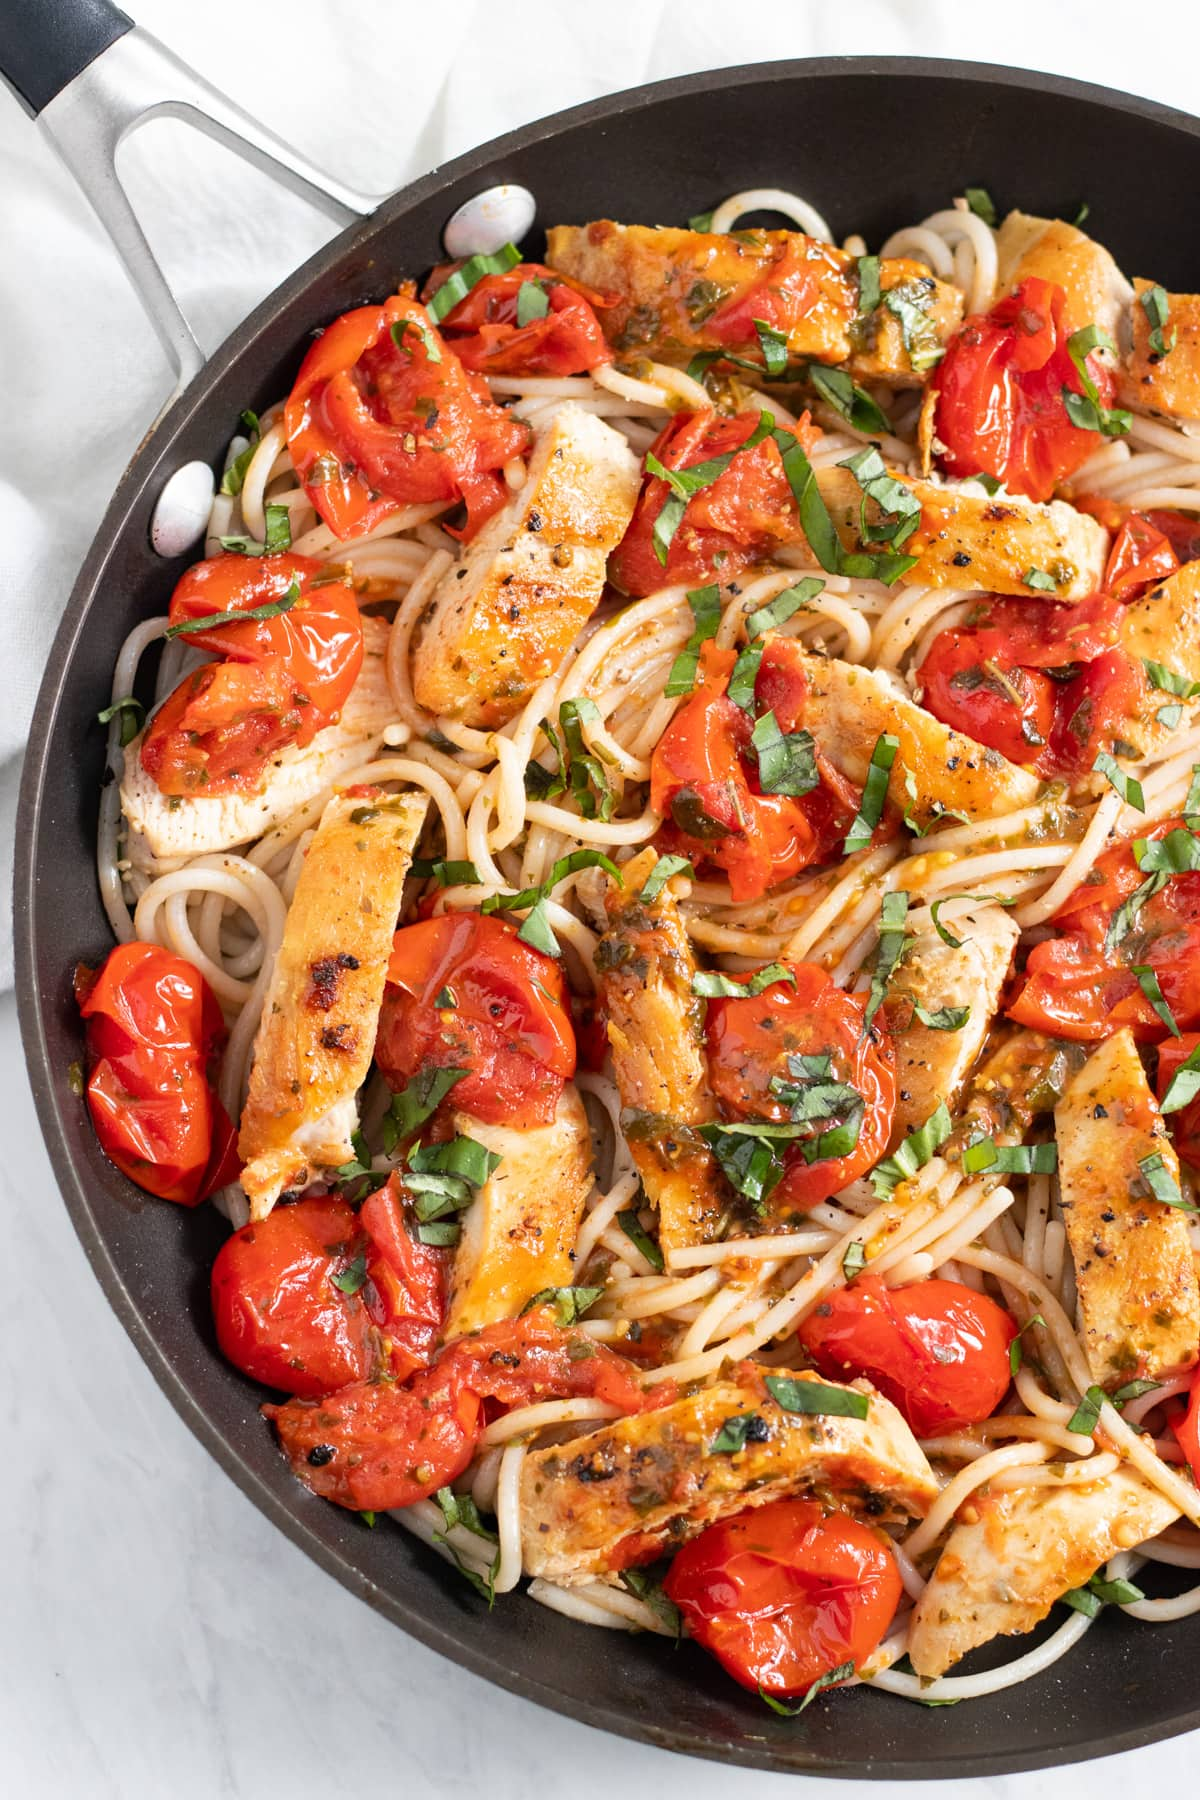 Skillet with pan-fried chicken strips, burst cherry tomatoes, and spaghetti in a white-wine butter sauce. Everything is topped with thinly-sliced fresh basil.